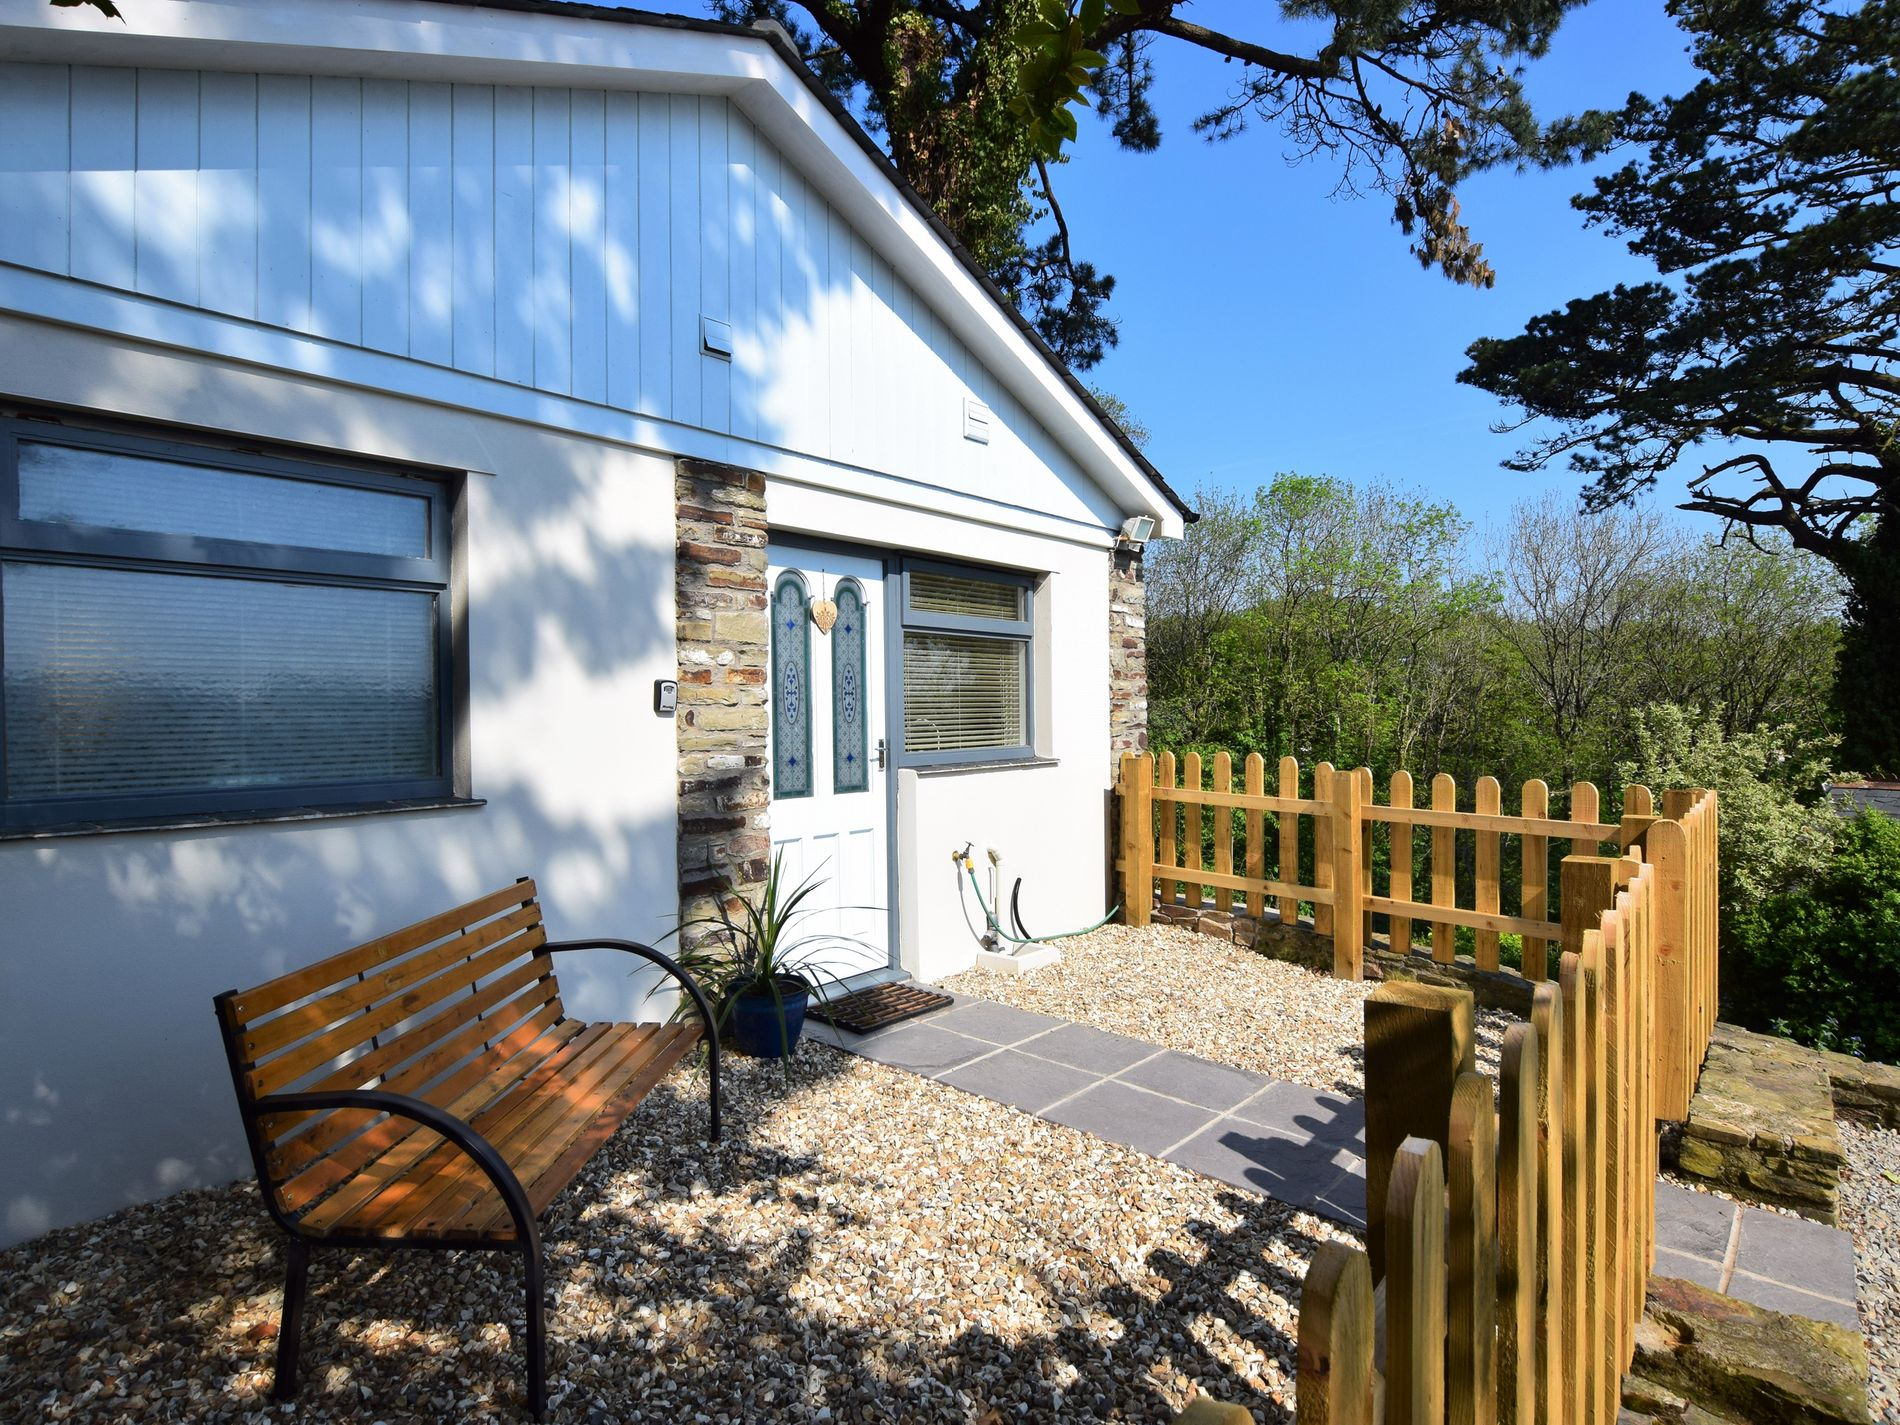 1 Bedroom Cottage in Bideford, Devon